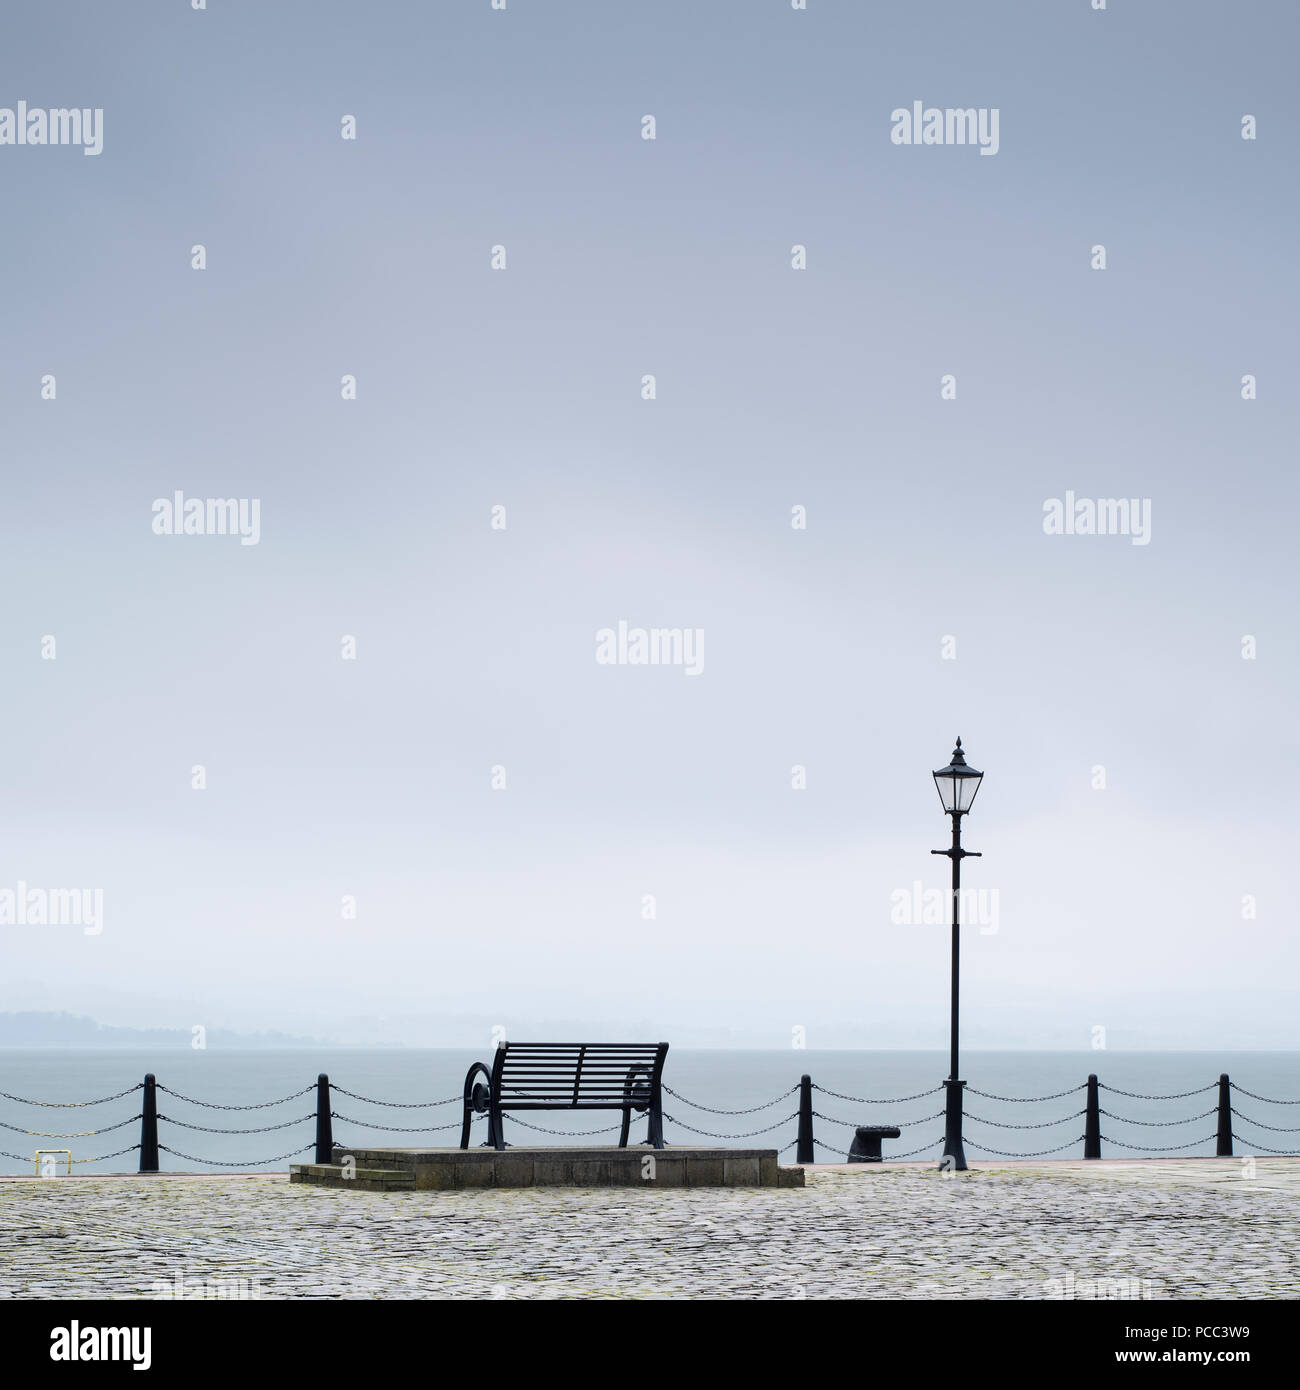 Lonely empty bench seat coastal sea peaceful quiet mindfulness scene view - Stock Image